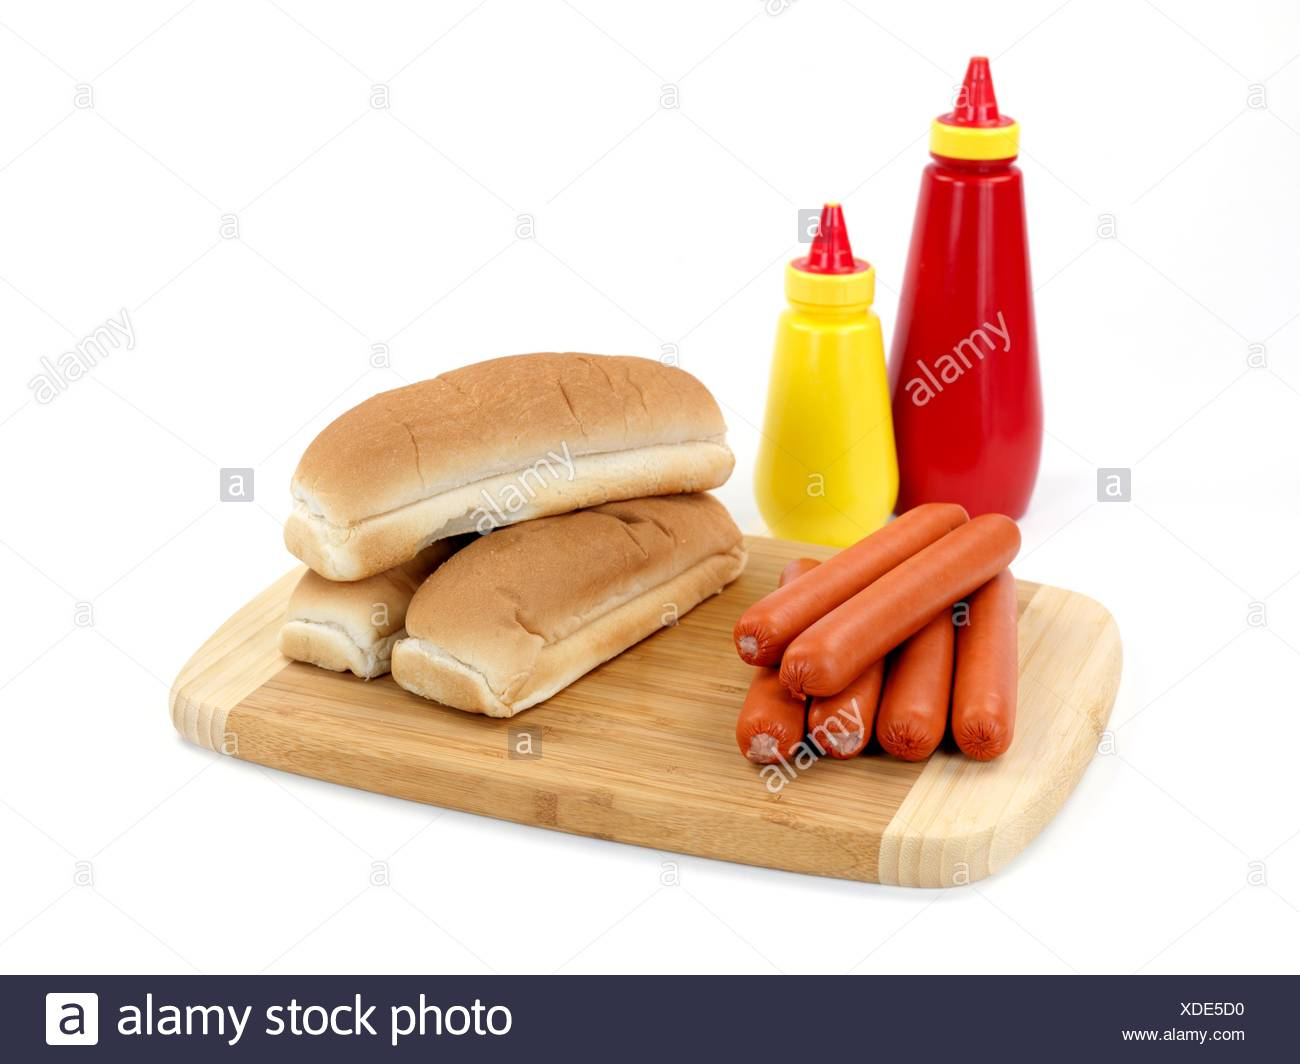 Frankfurt sausages isolated against a white background - Stock Image